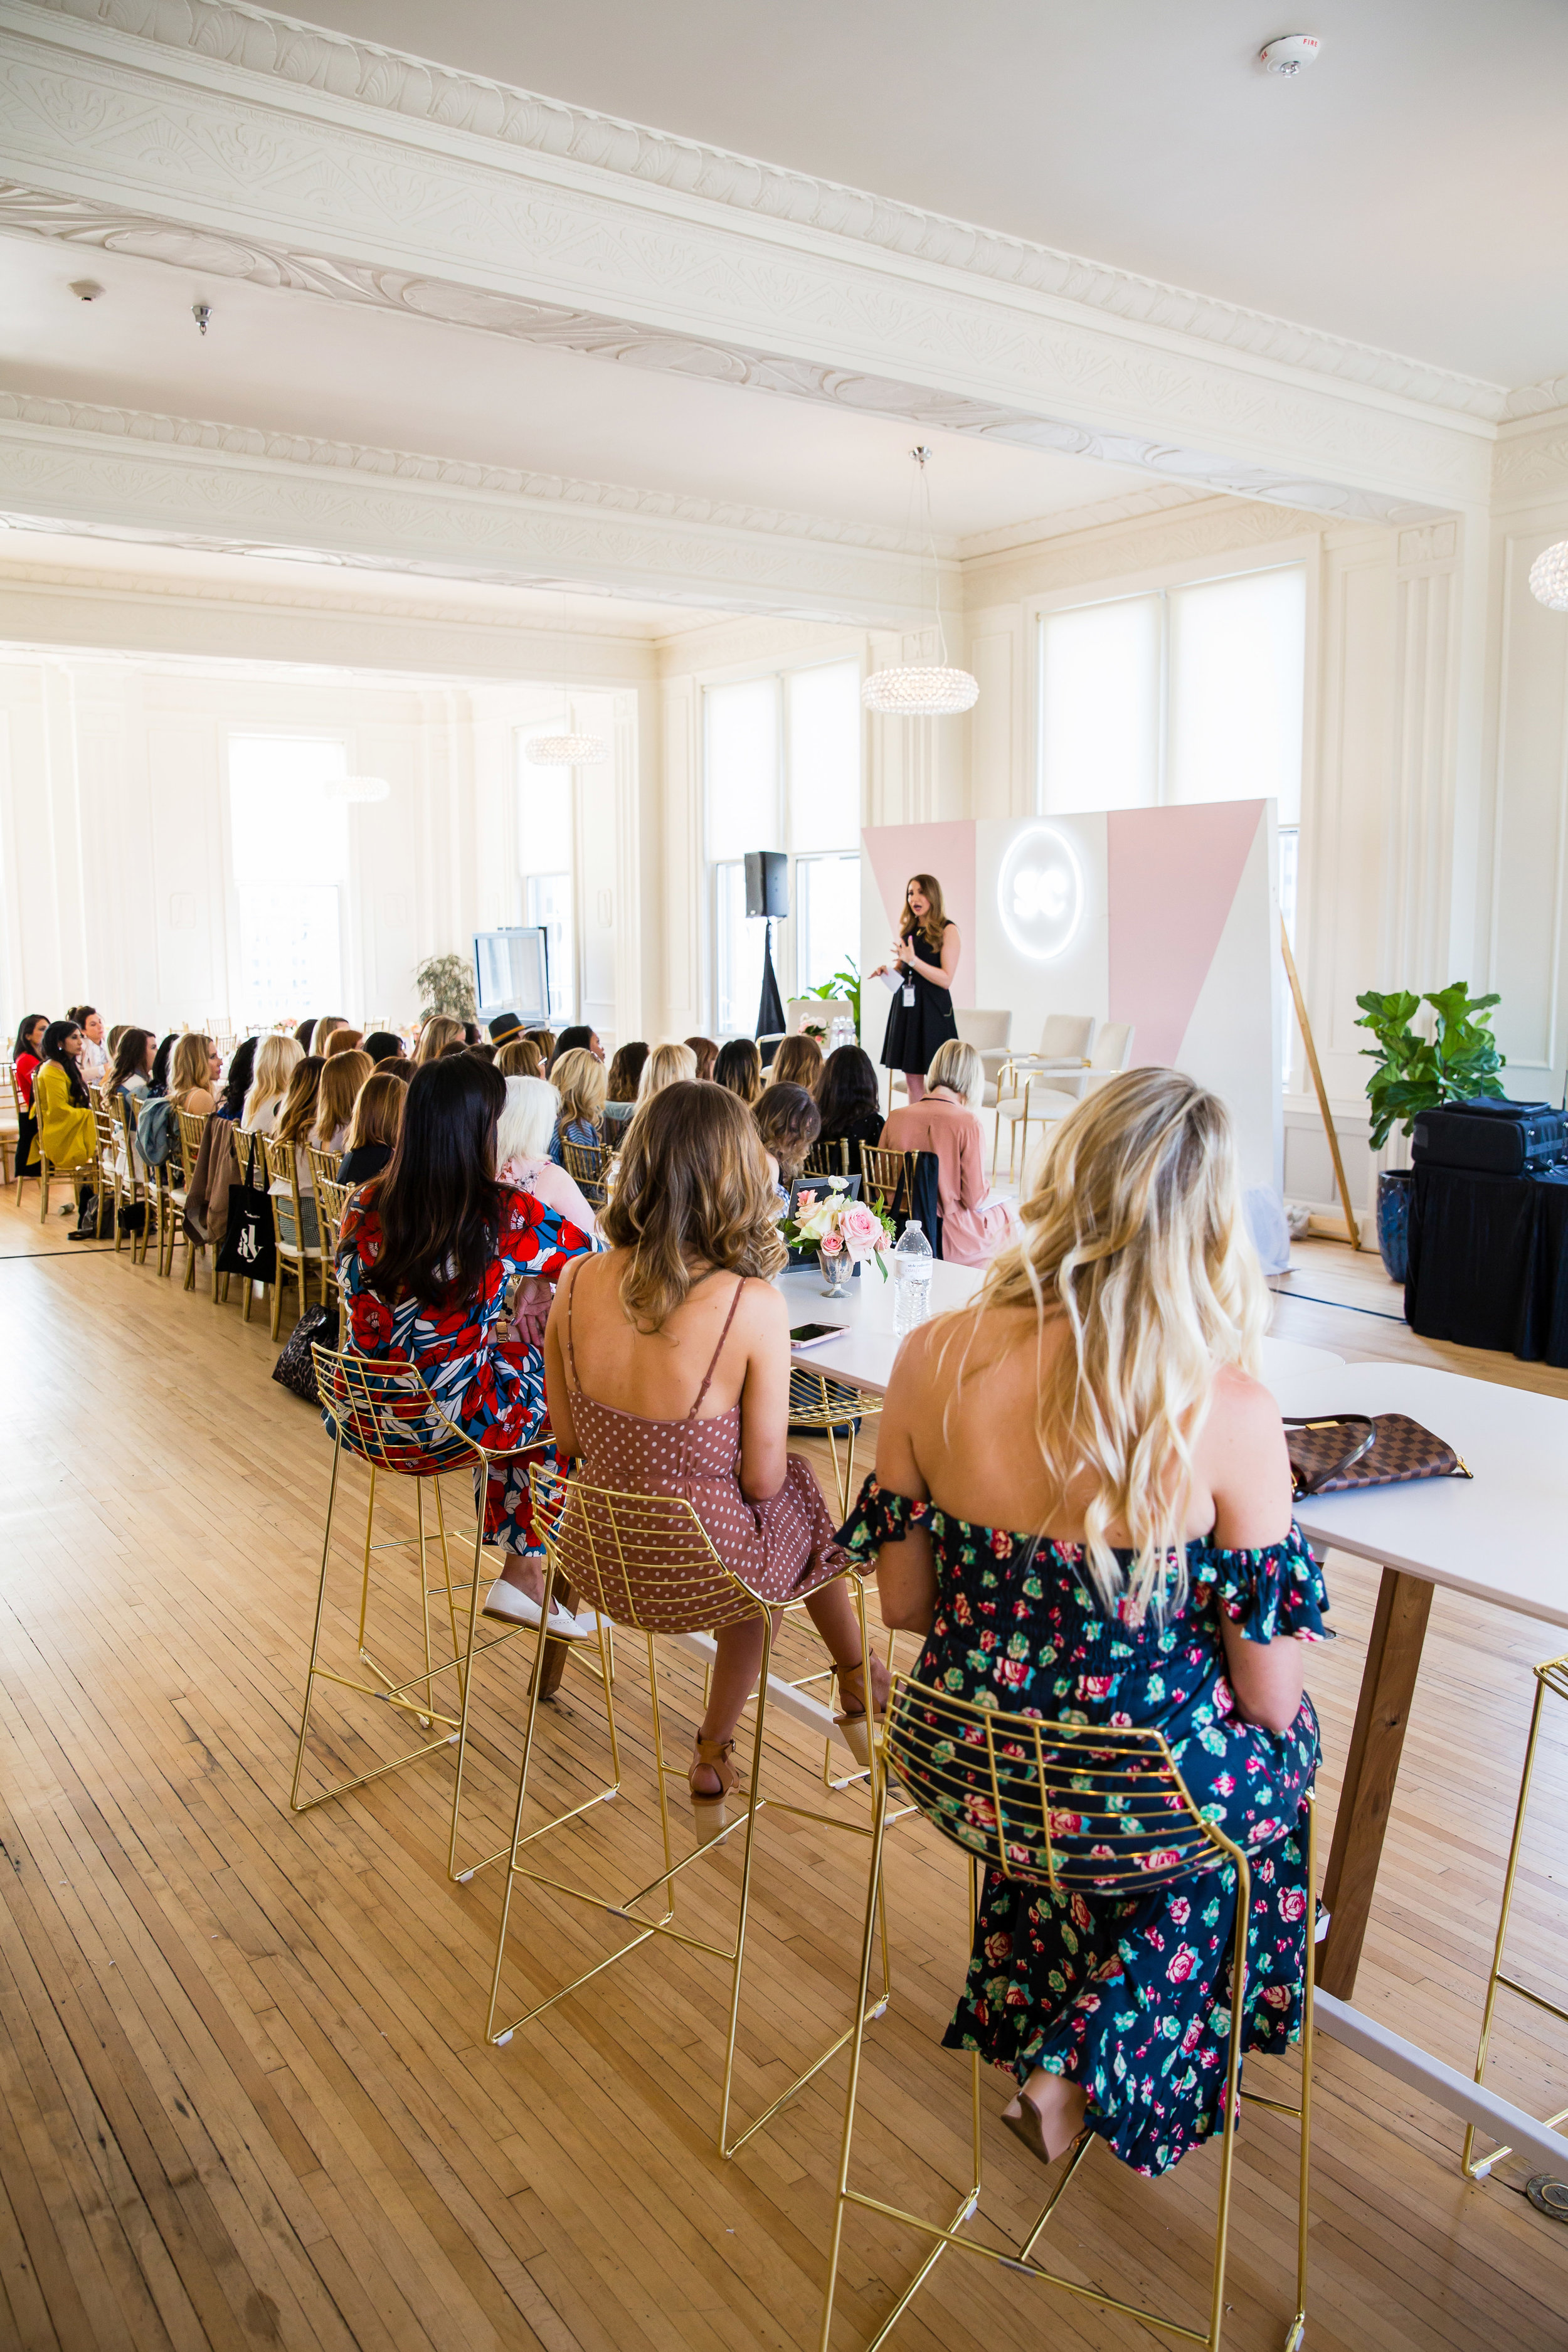 Annie Spano on a mission to inspire women bloggers